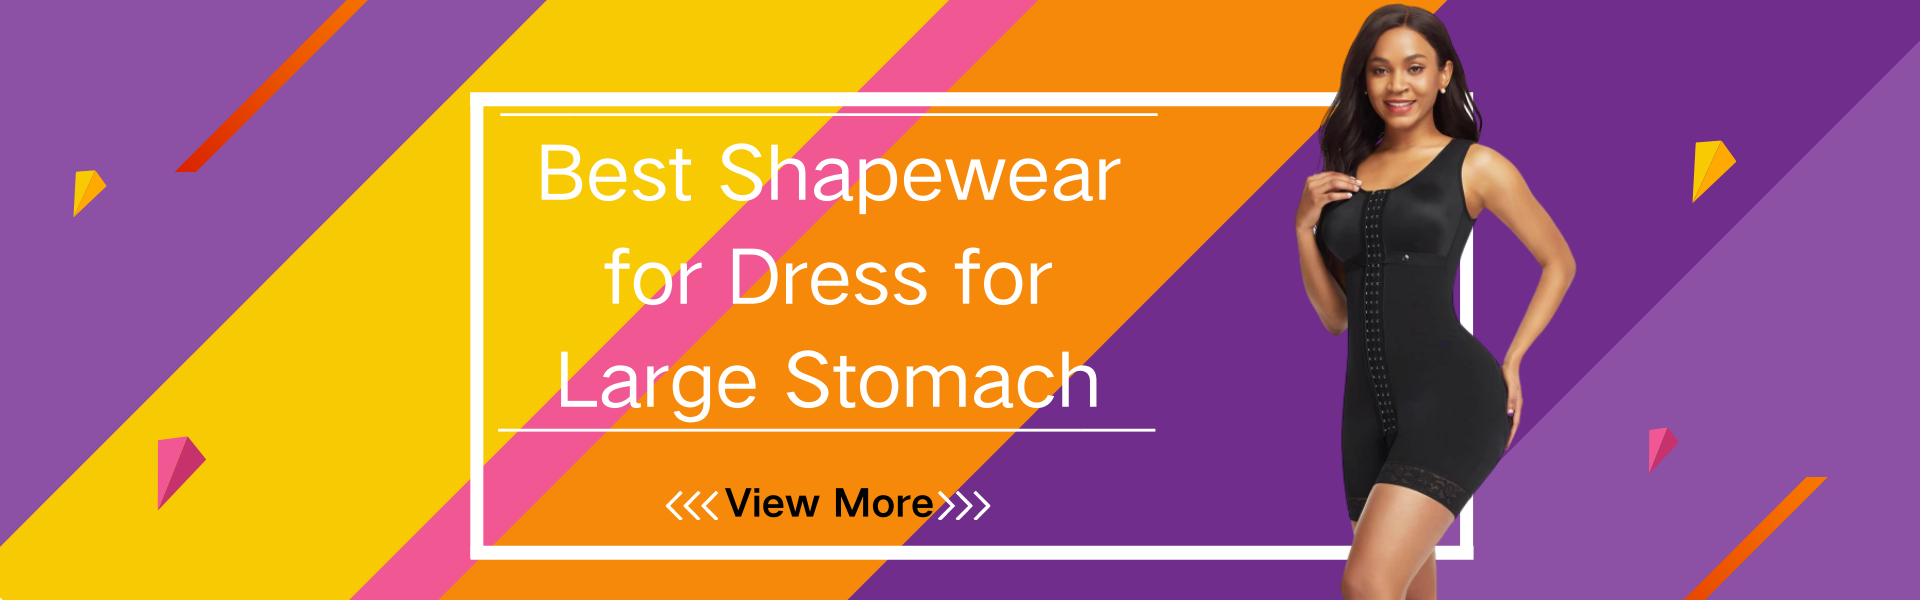 Best Shapewear for Dress for Large Stomach